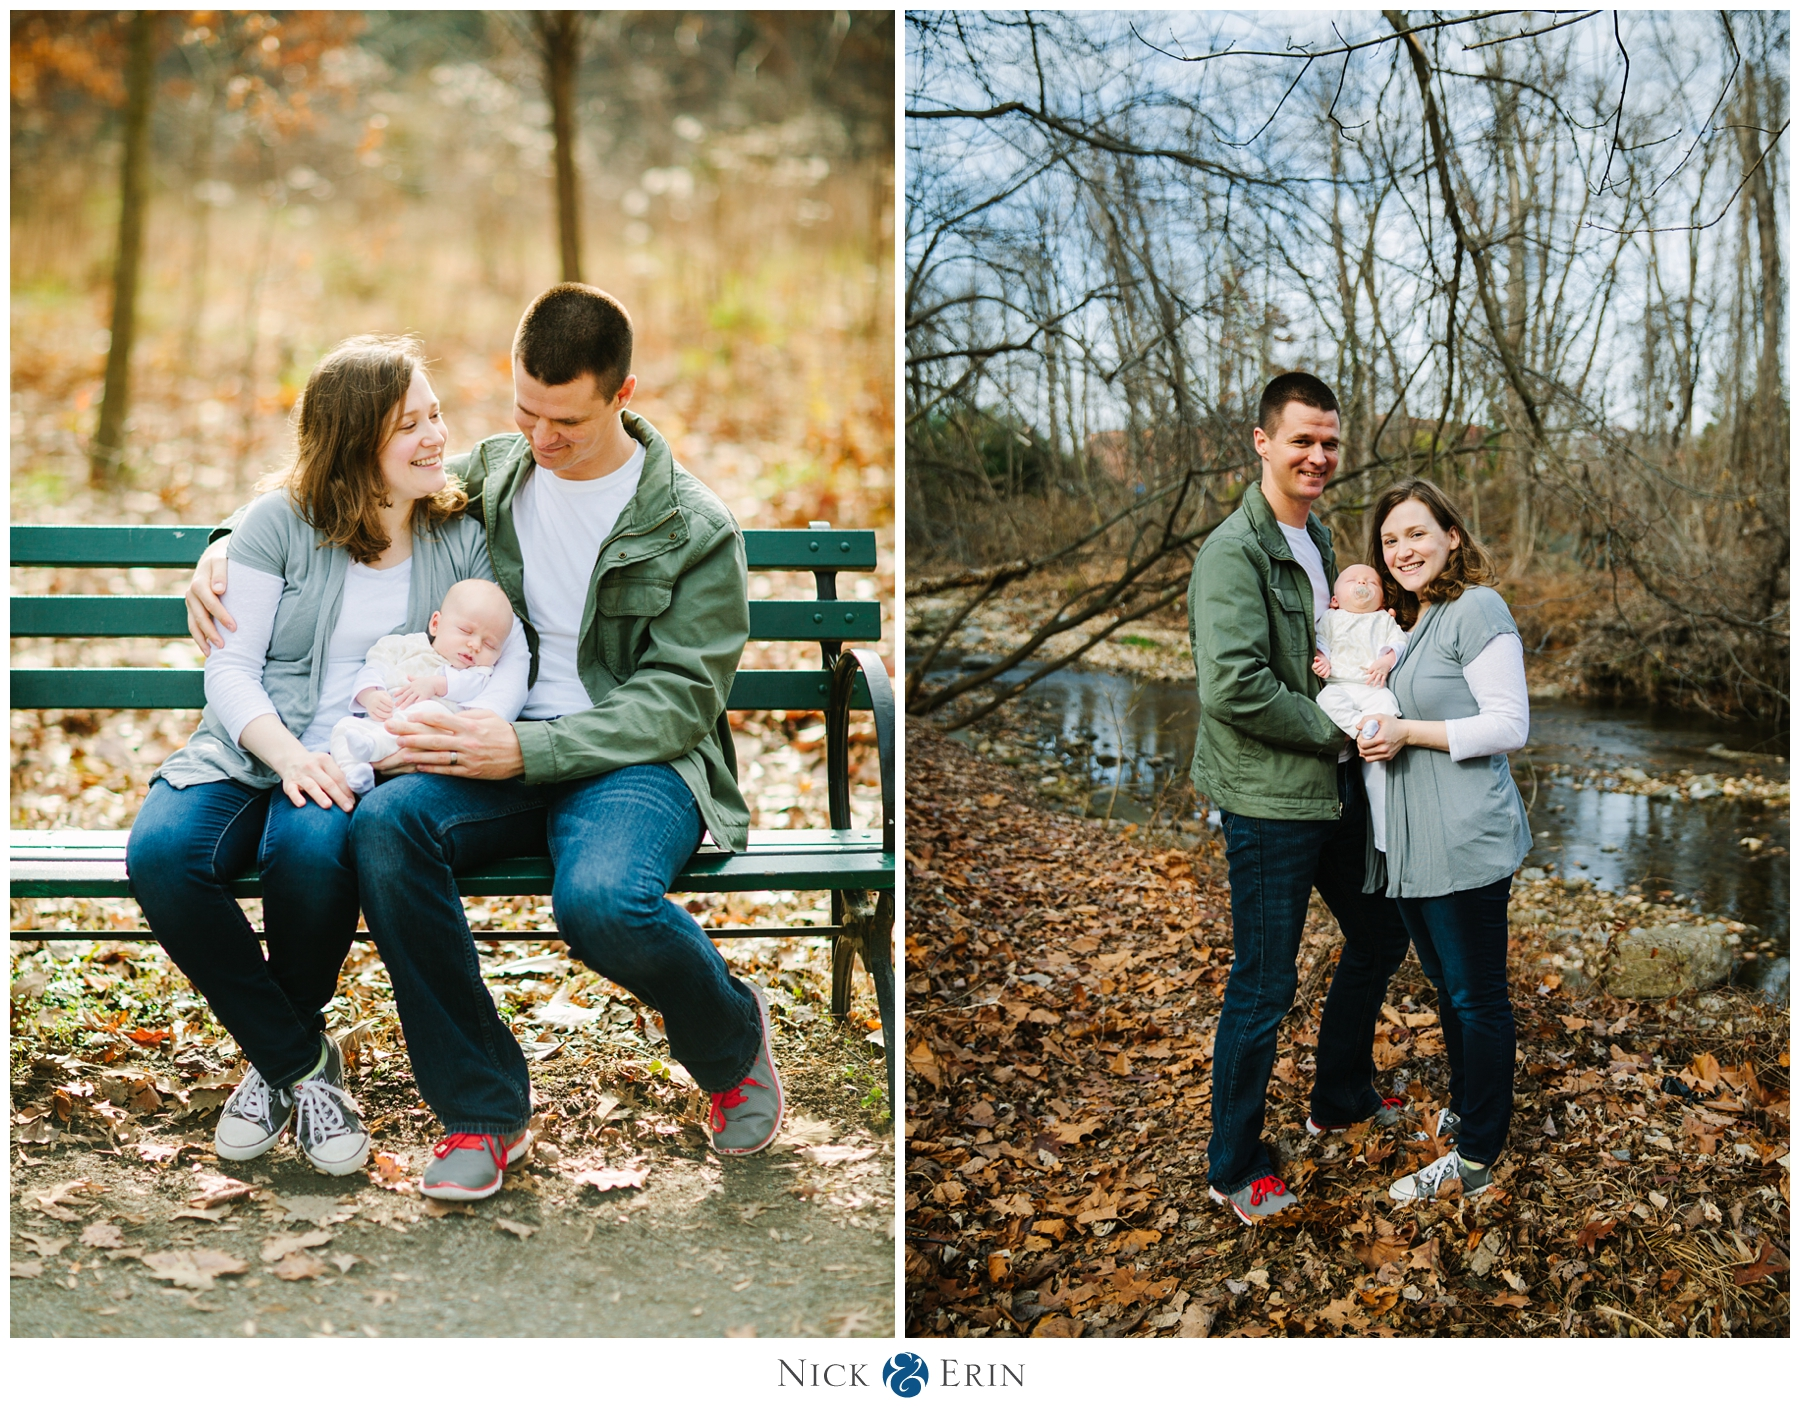 Donner_Photography_Woods Family Portraits_0008